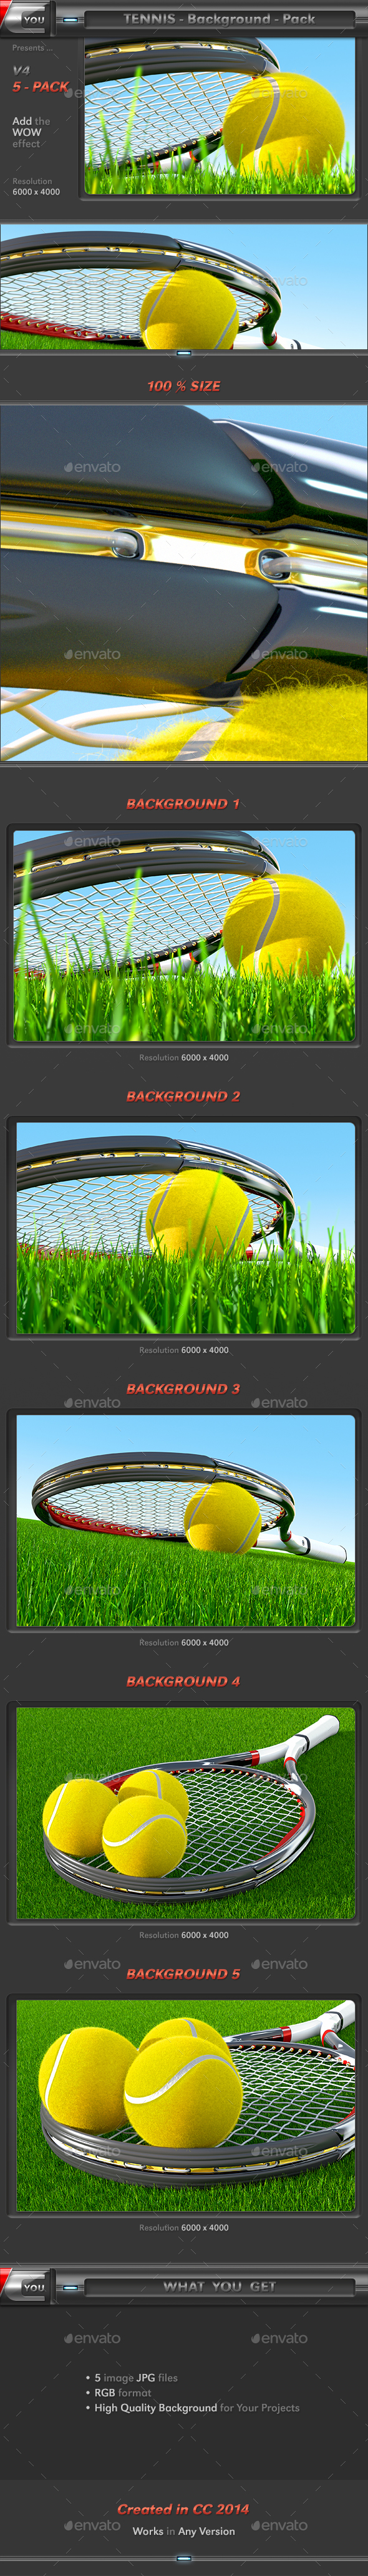 Tennis Background Pack 4 - 3D Backgrounds